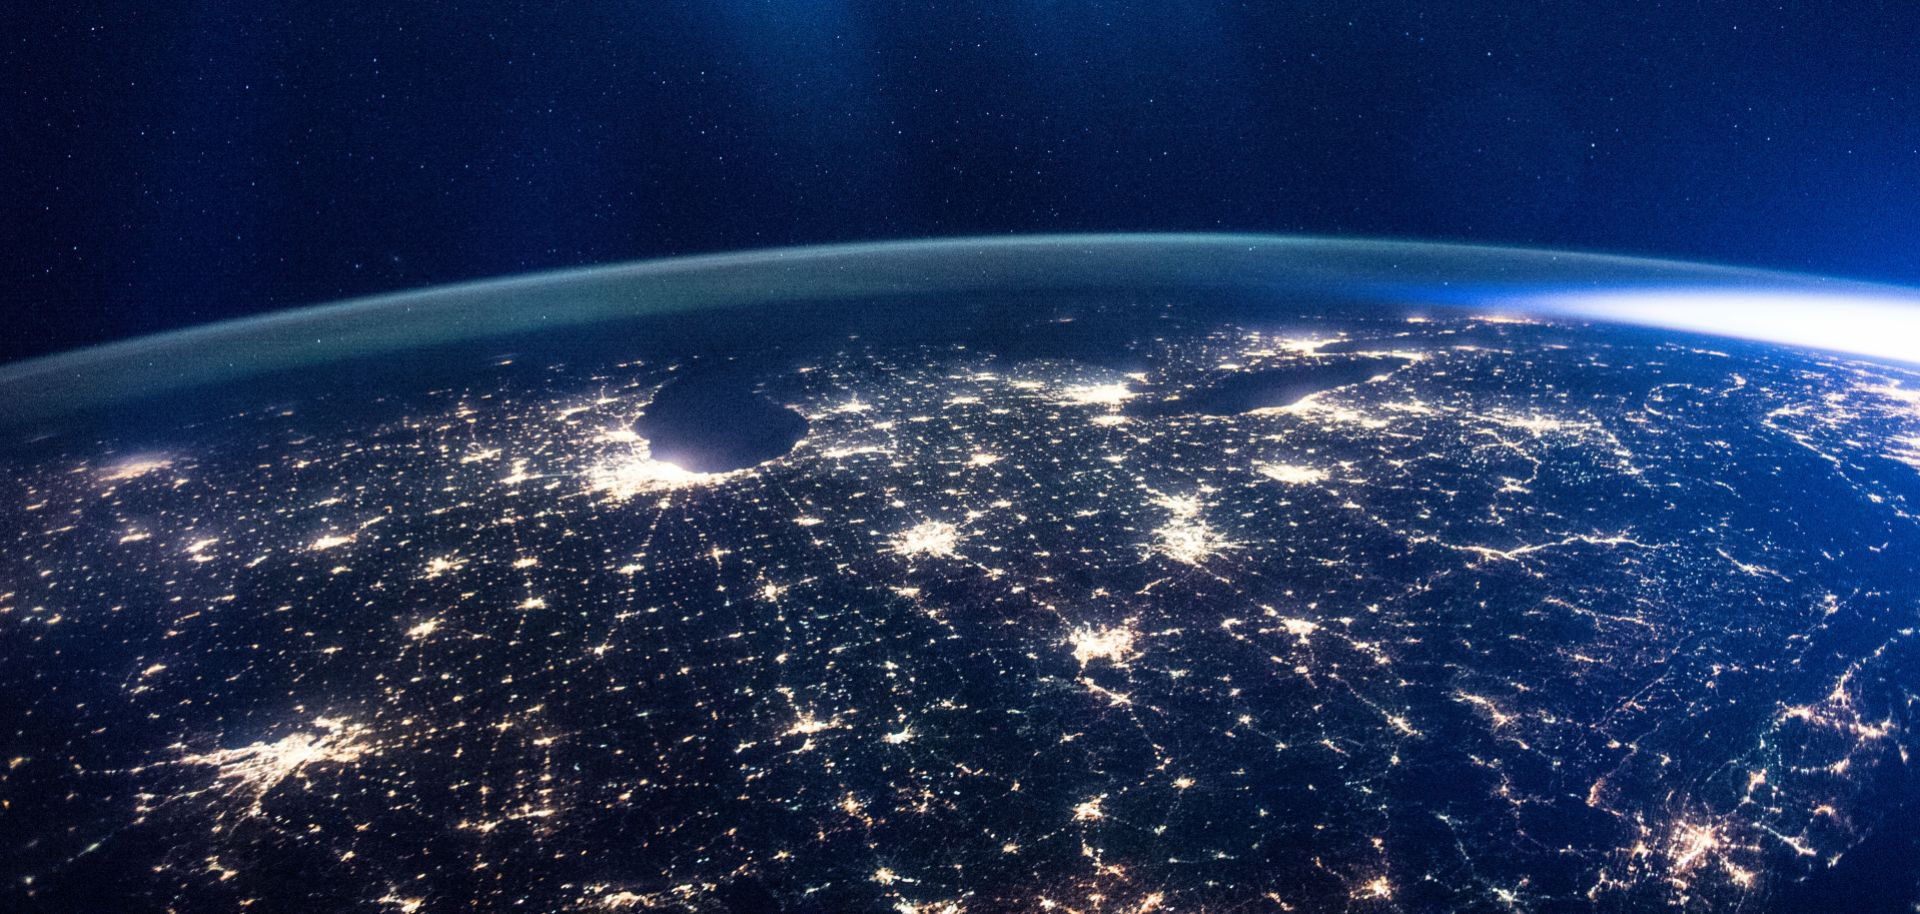 The glittering lights of the American Midwest illuminate the Earth in this captivating image taken by the International Space Station Expedition 46 crew on Jan. 5, 2016. The picture, which was taken while the station was flying above Alabama, shows numerous major cities, including the major city of Chicago (middle-left) situated on the Lake Michigan coastline. Also in view are three of the American Great Lakes, including Lake Michigan (left), Lake Huron (middle) and Lake Erie (right).